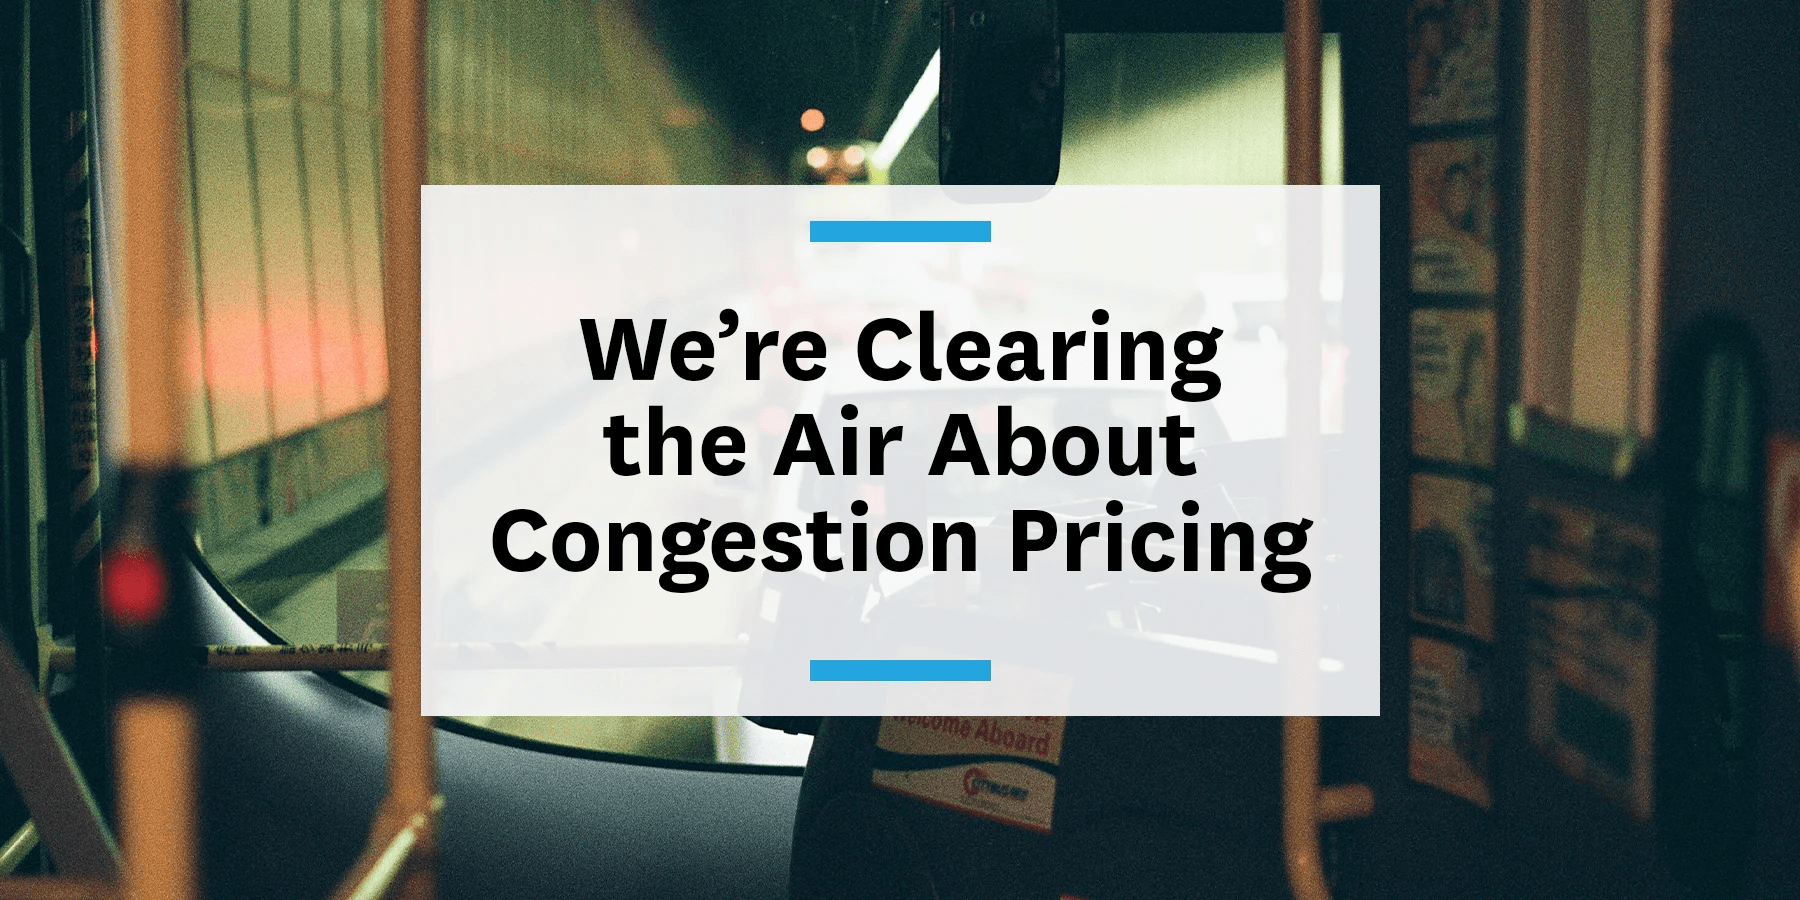 Feature image for clearing the air about congestion pricing